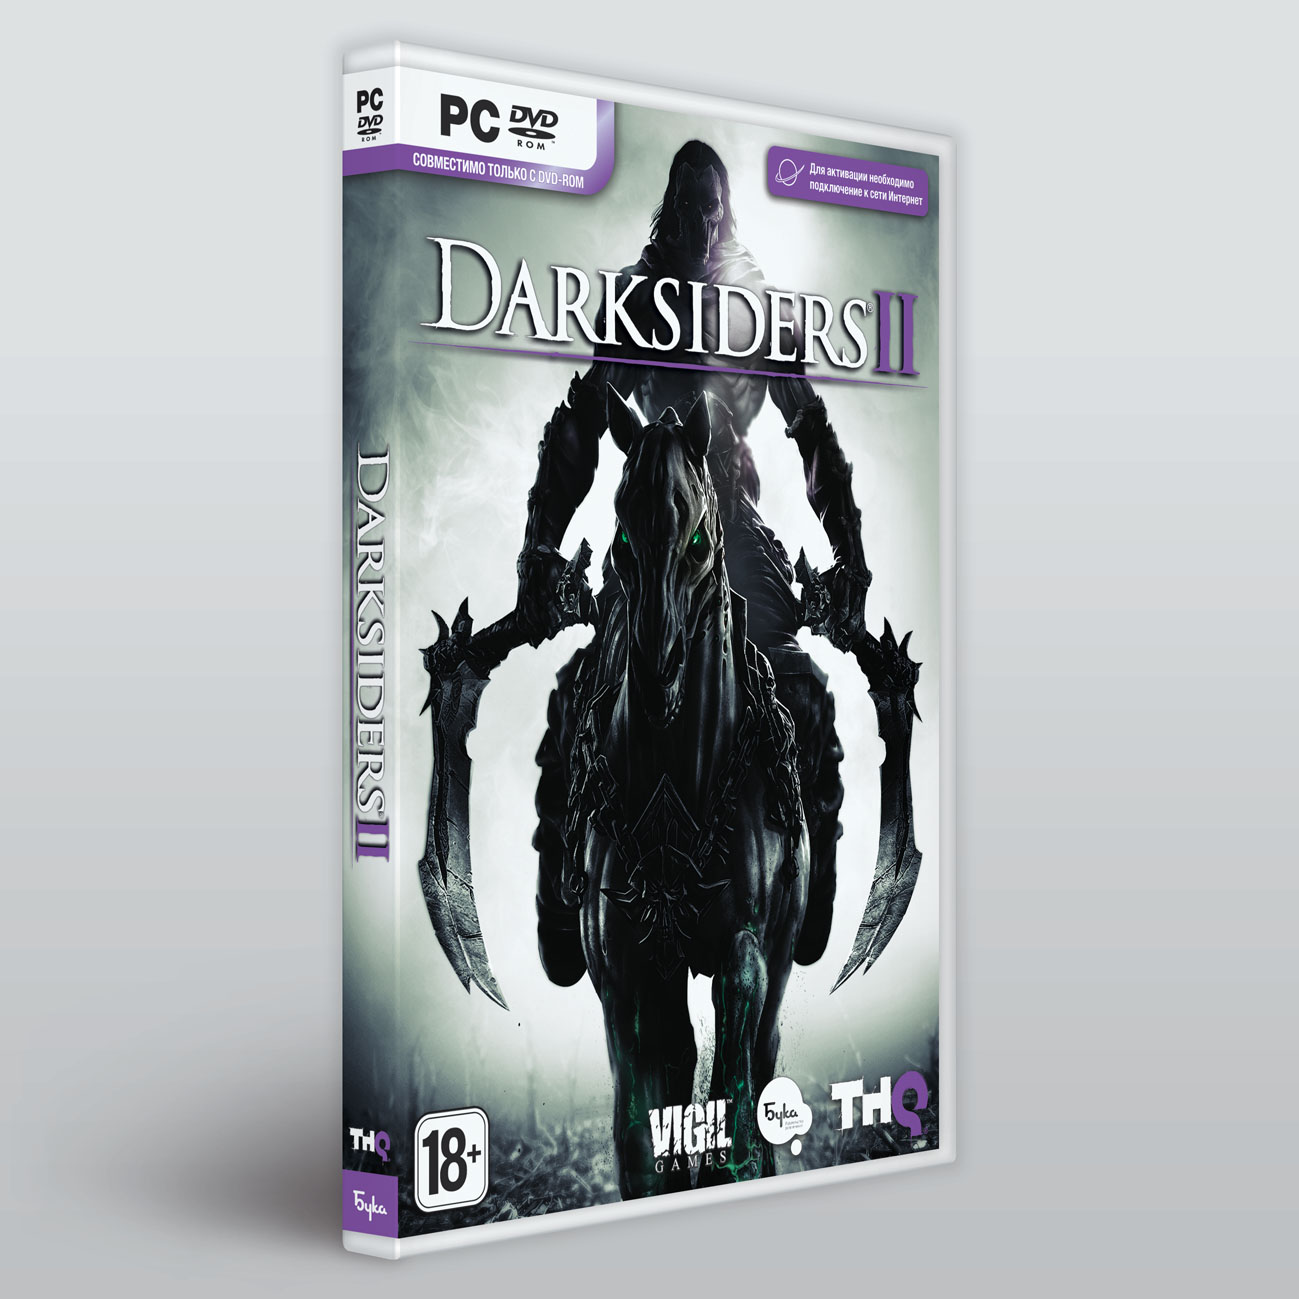 Darksiders 2 II (Steam) - key official from Buka